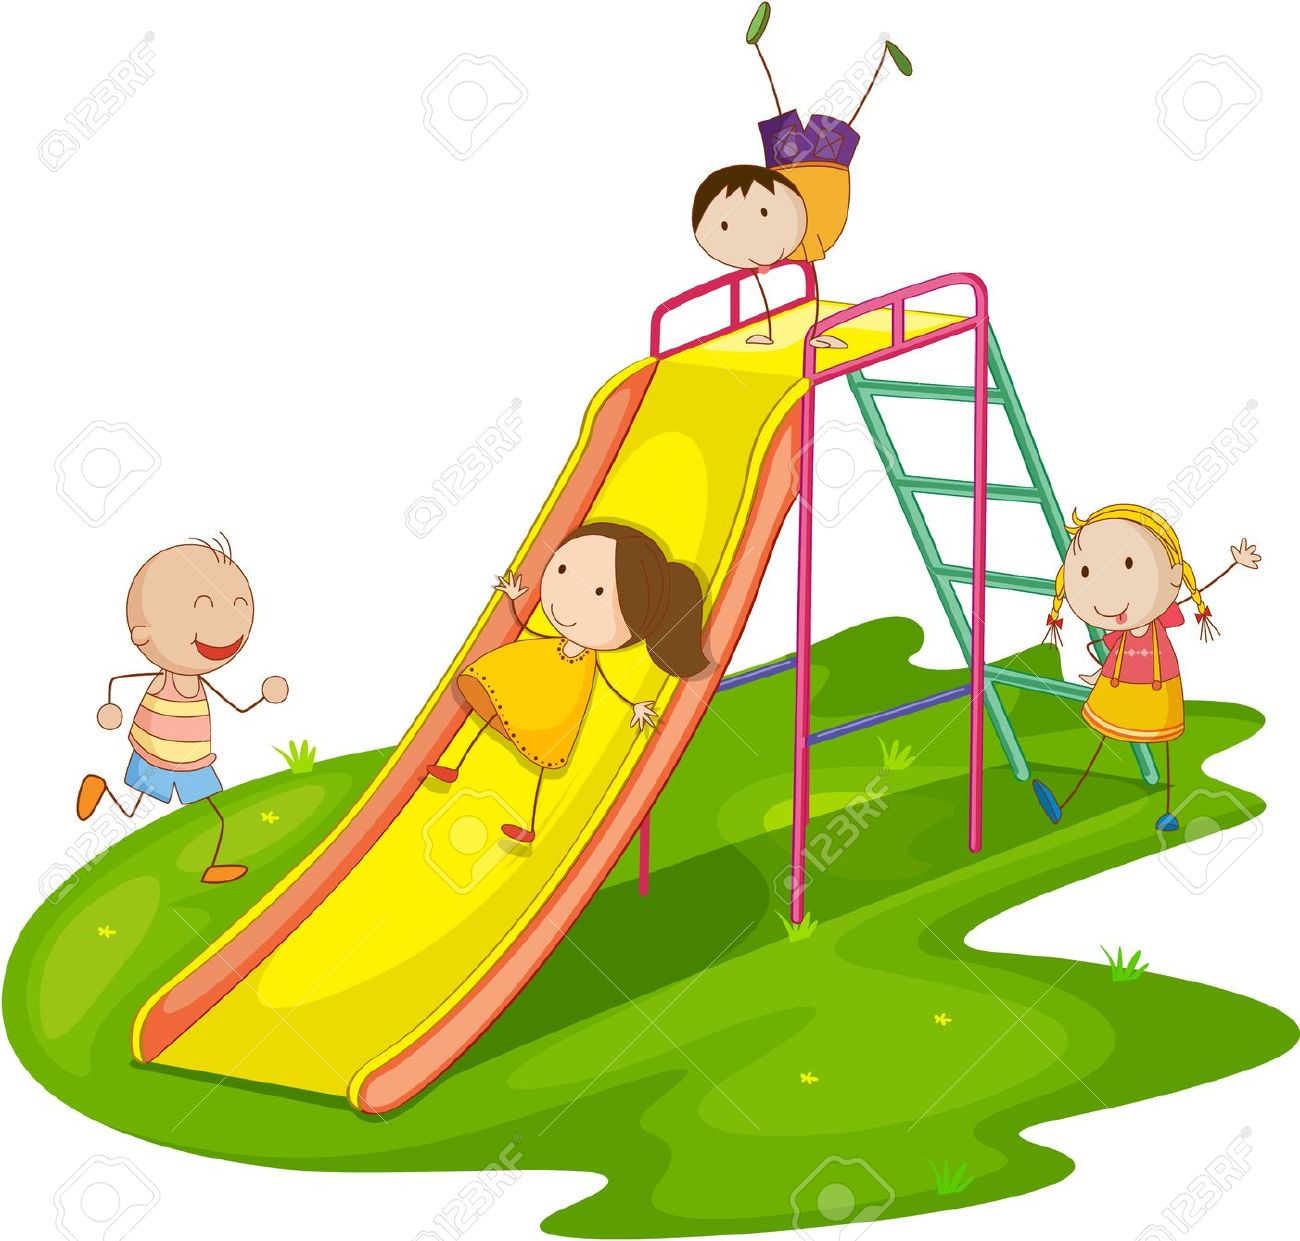 1300x1241 Swing Clipart Children's Playground